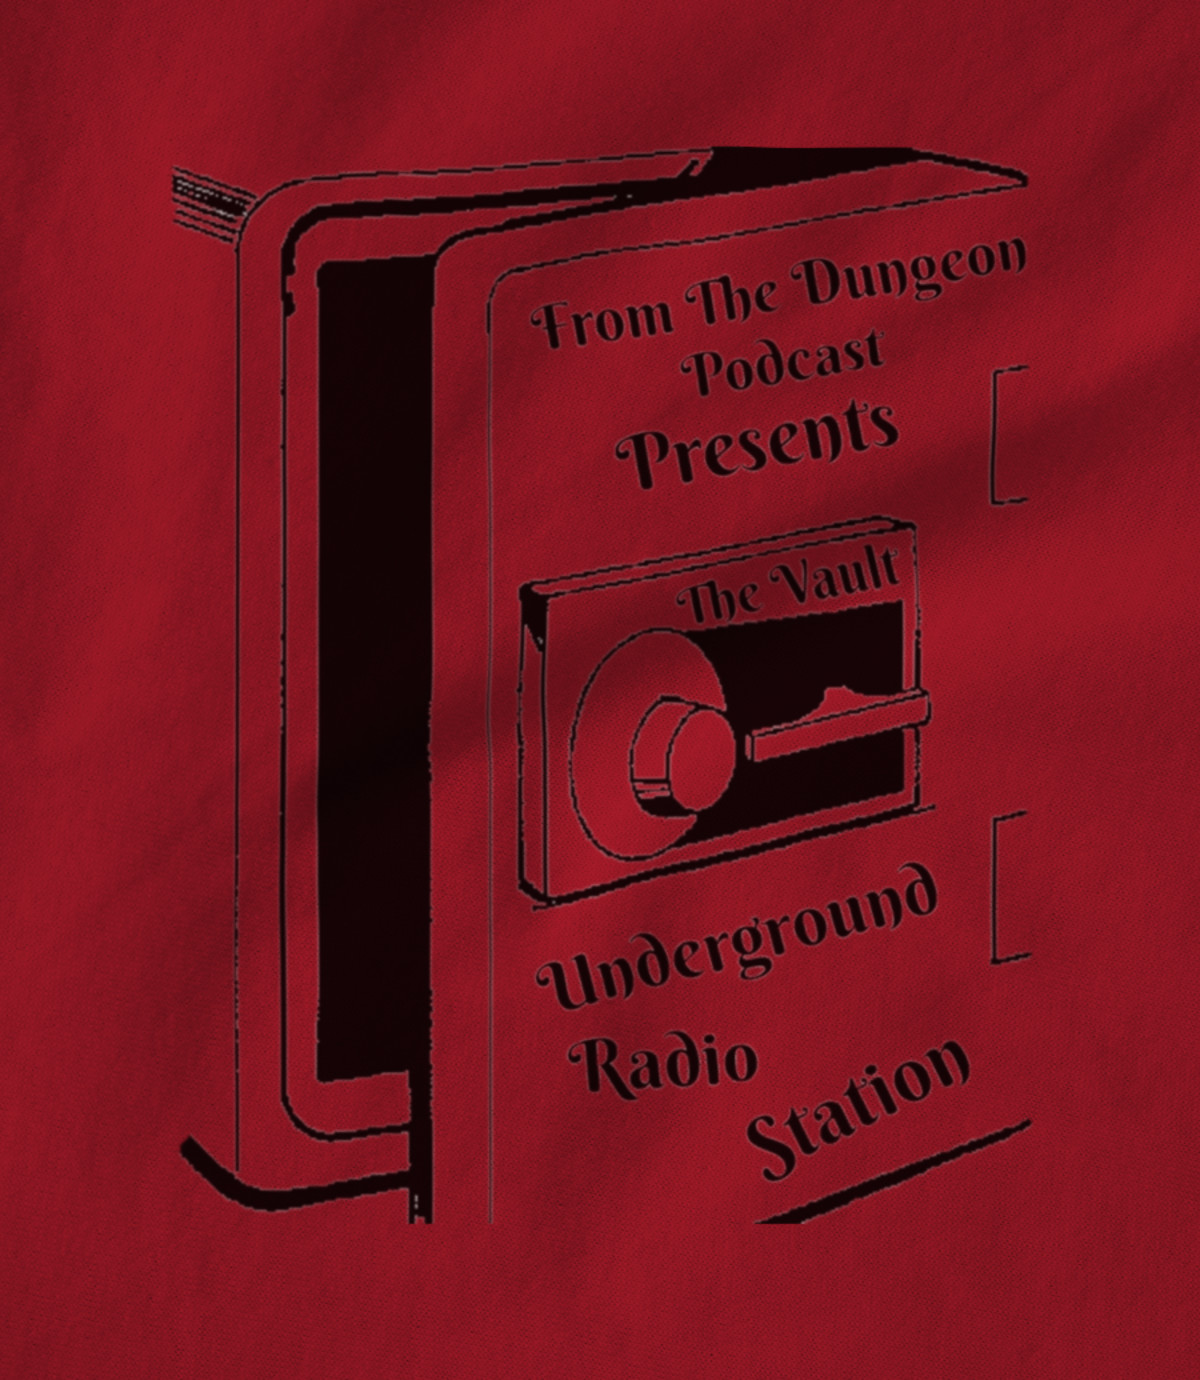 From the dungeon podcast  the vault radio show 1526064600